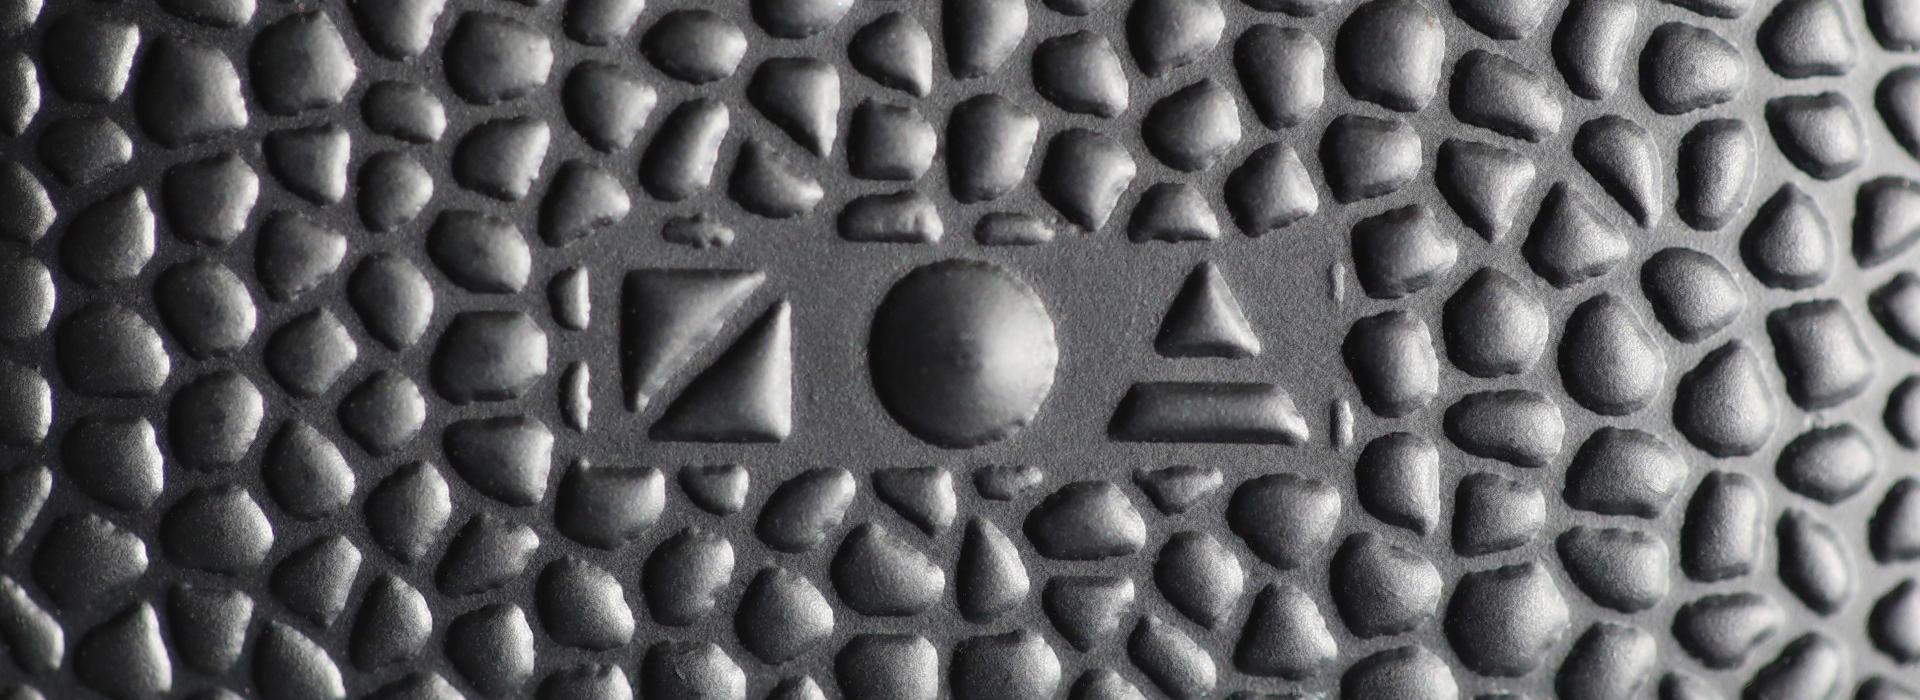 Zoa raised logo on Zoa material